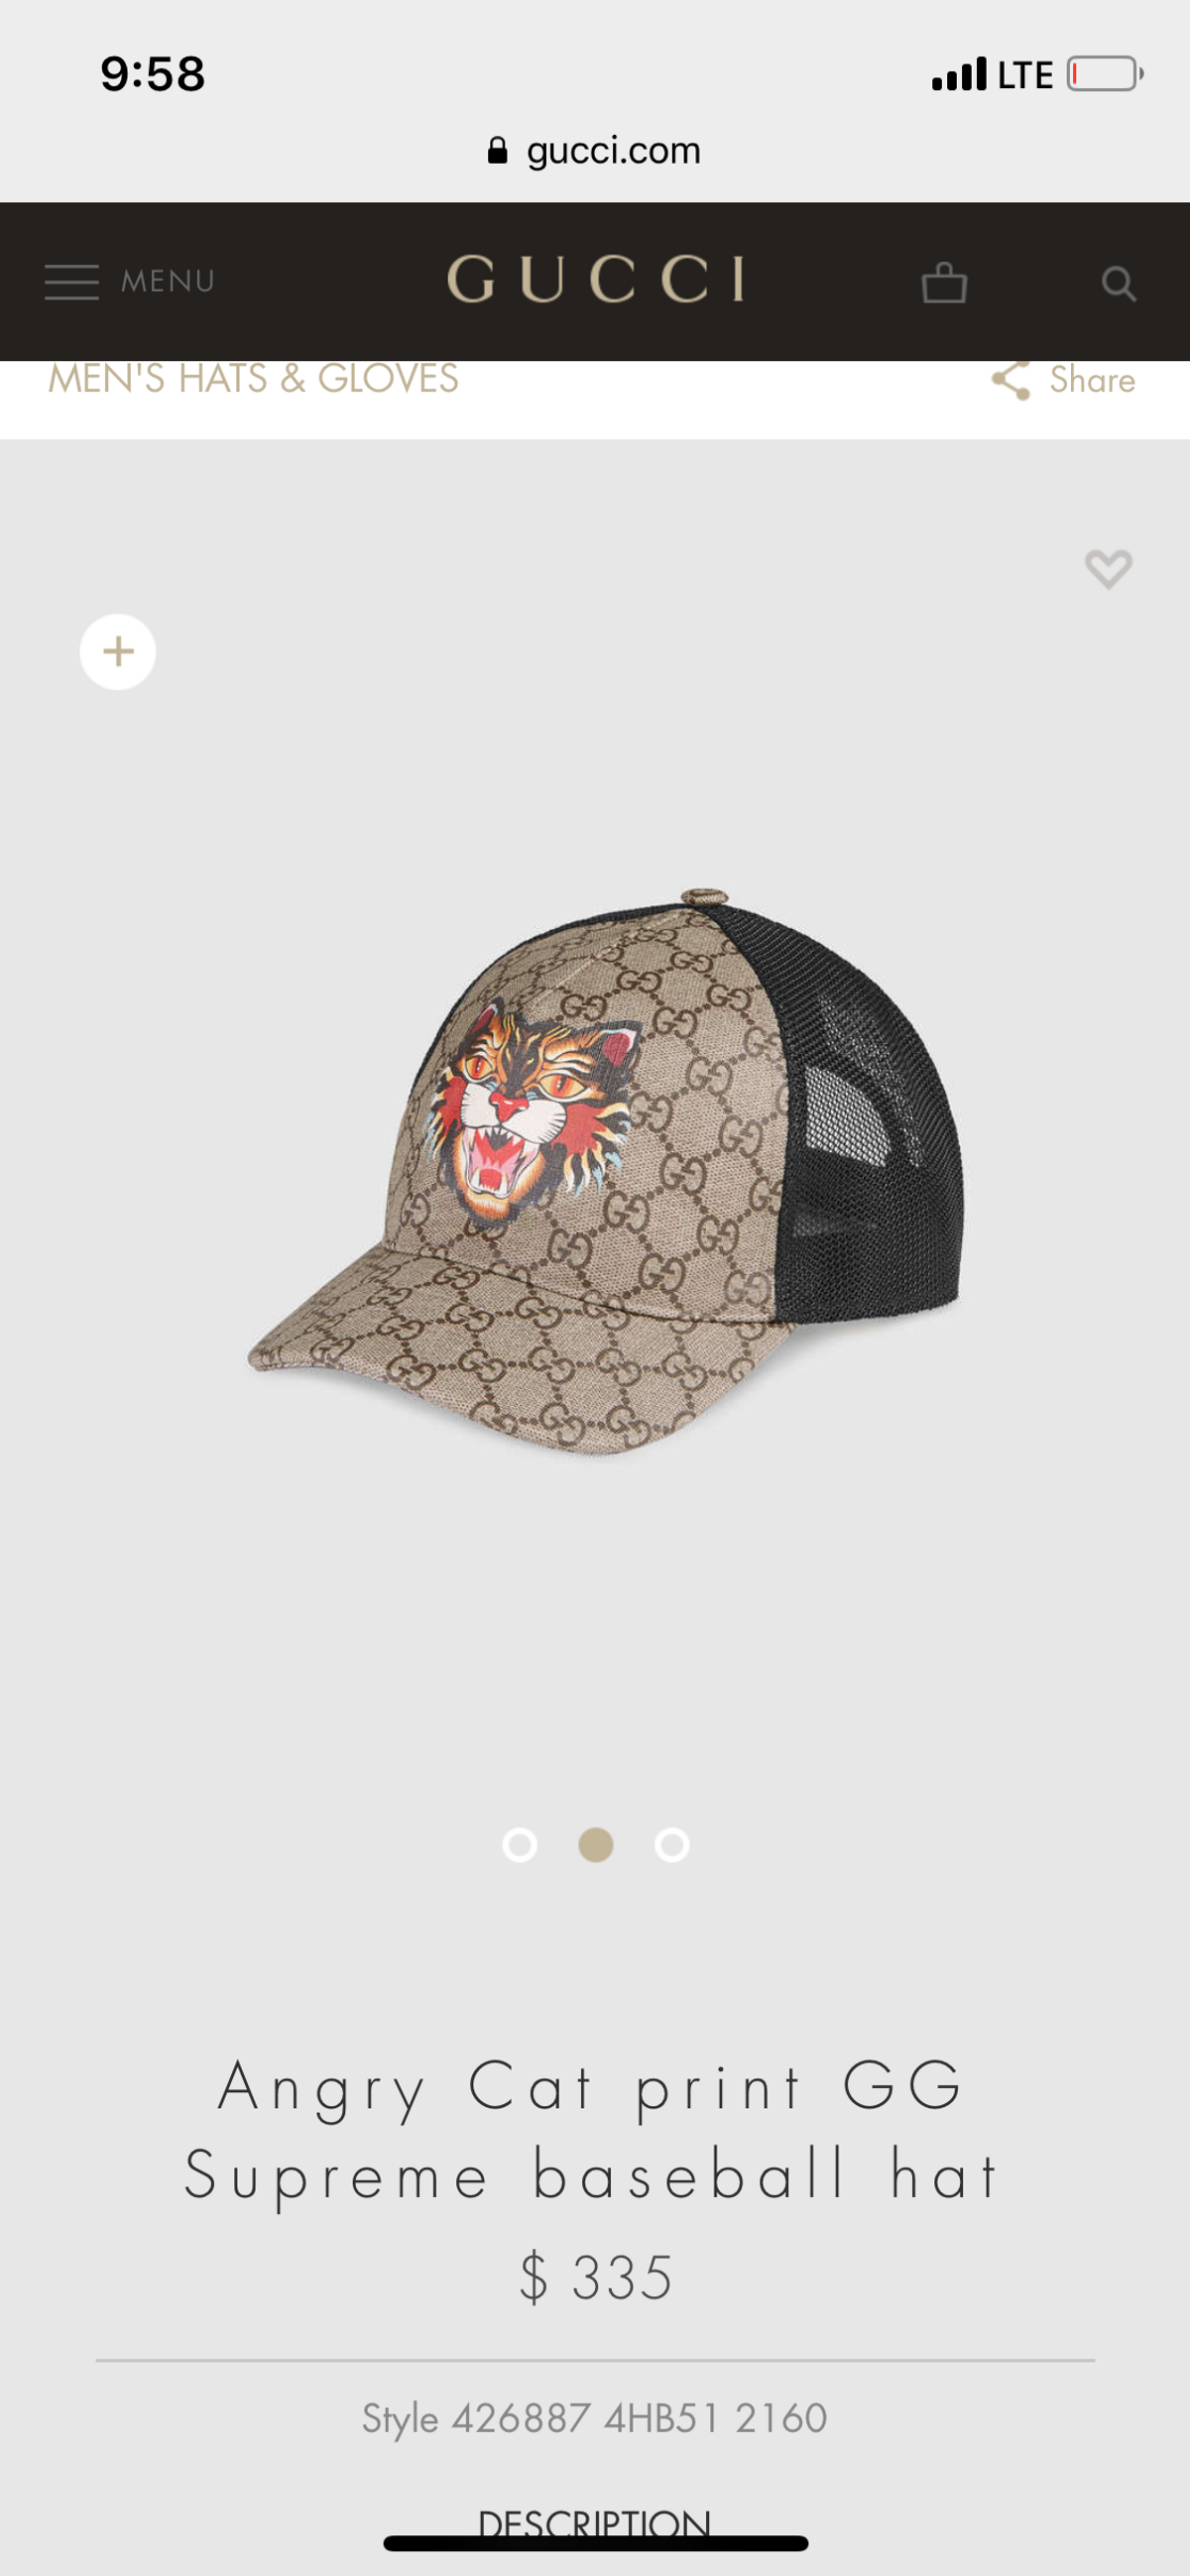 154bba0f Gucci Angry Cat Gg Baseball Hat | Grailed